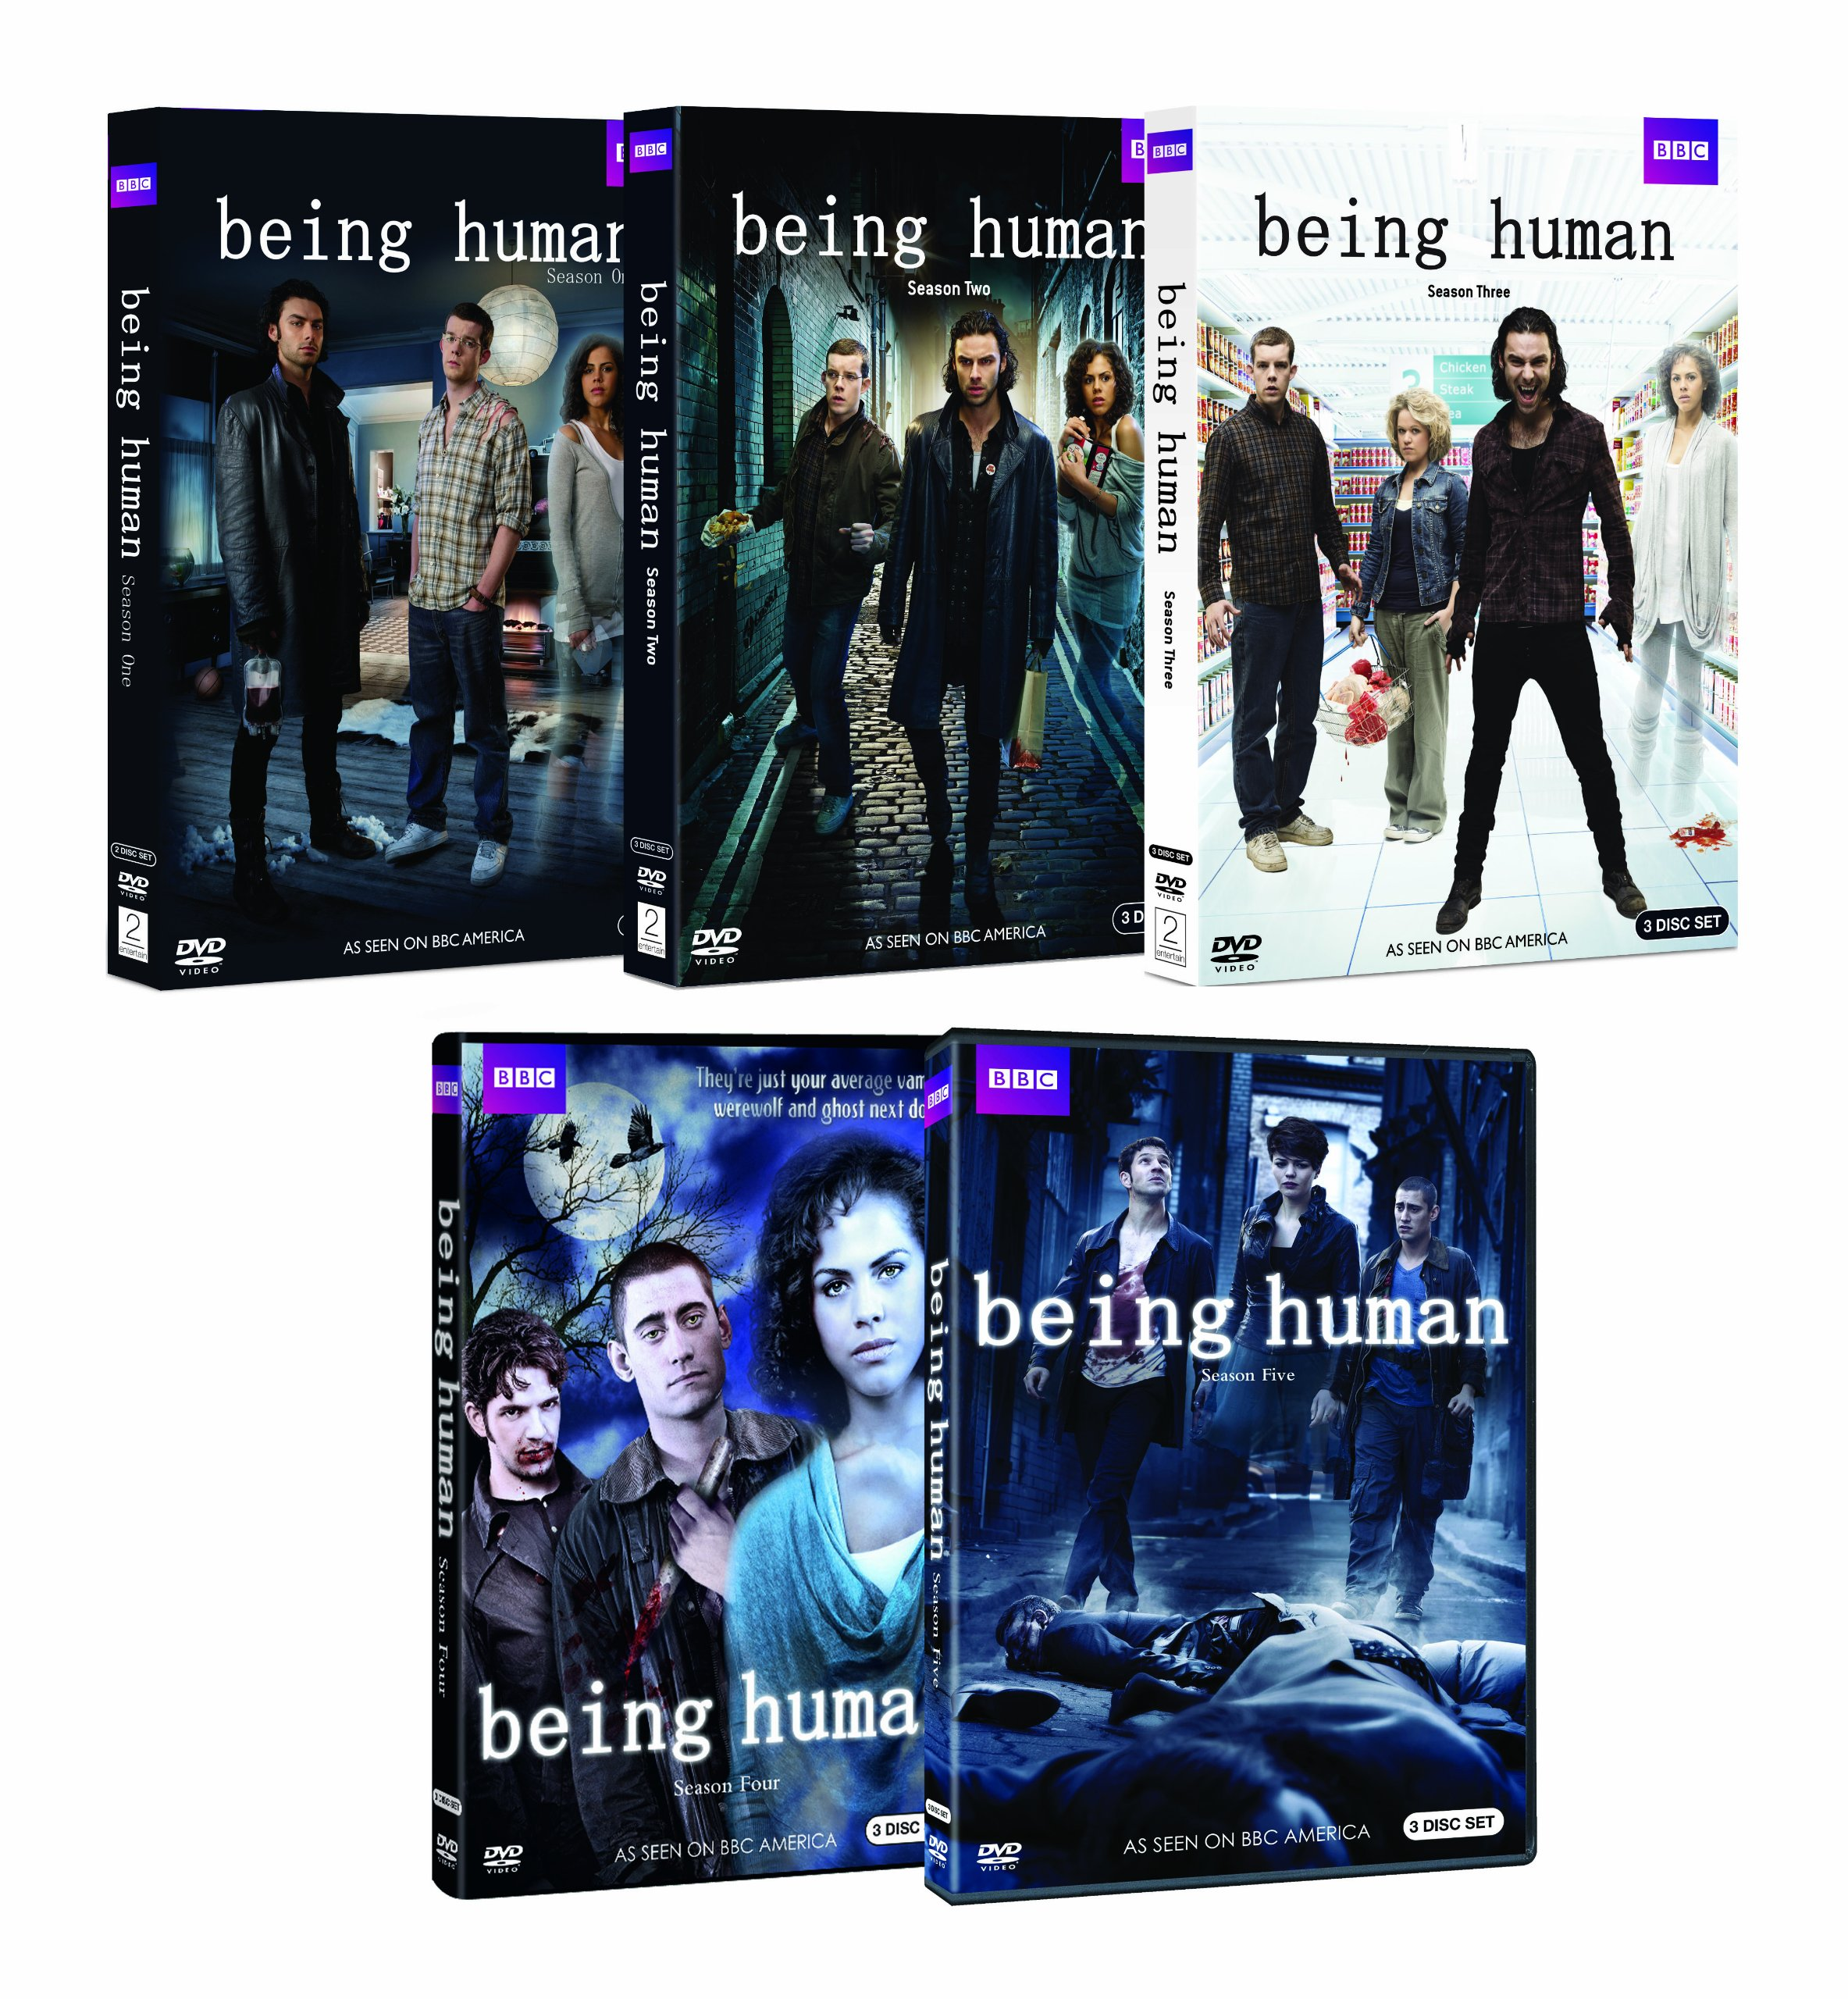 Being Human Complete Seasons 1-5 Bundle by BBC